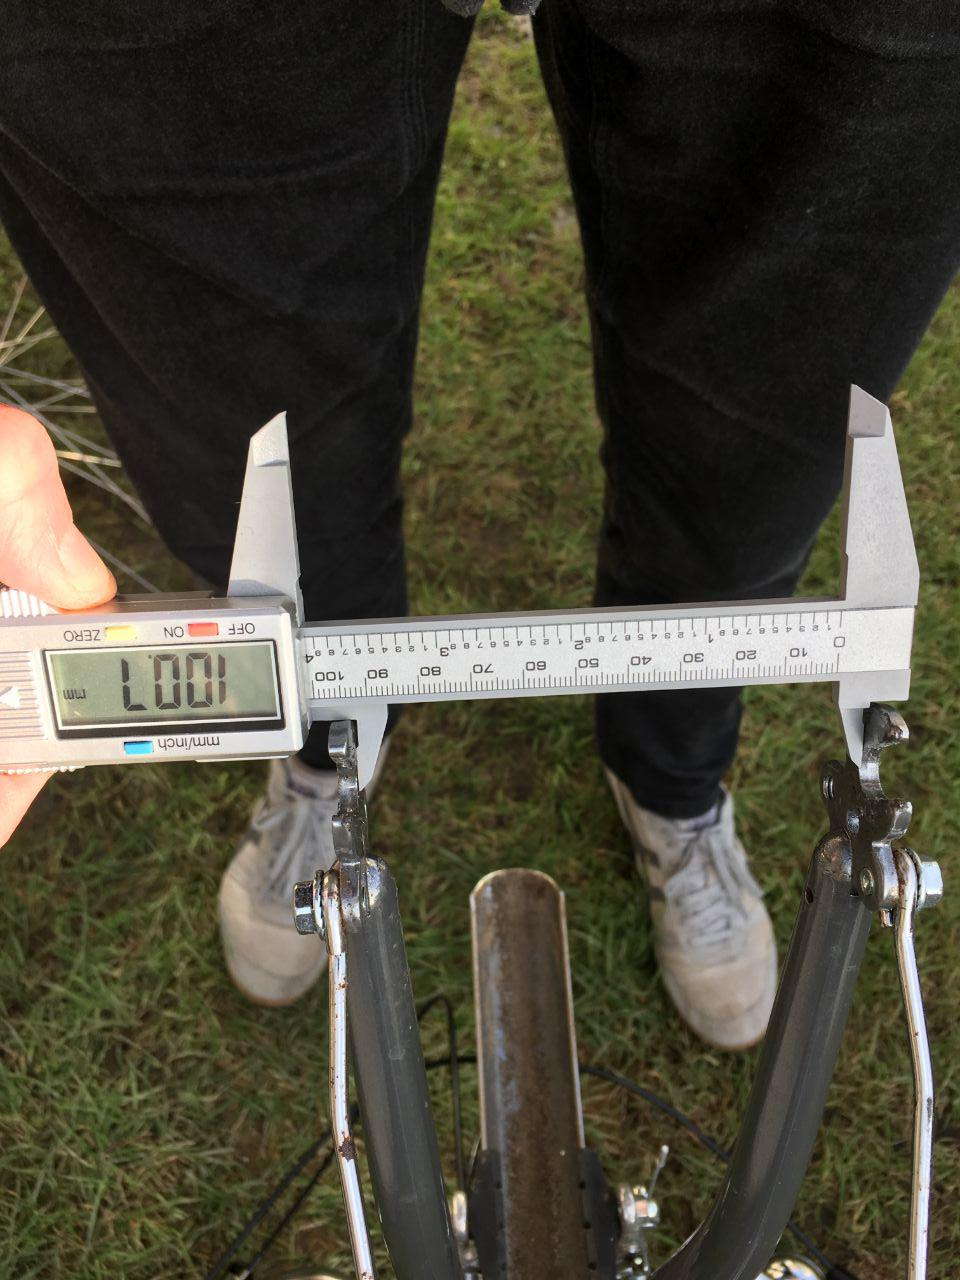 Measuring the bicycle fork clearance using a calliper